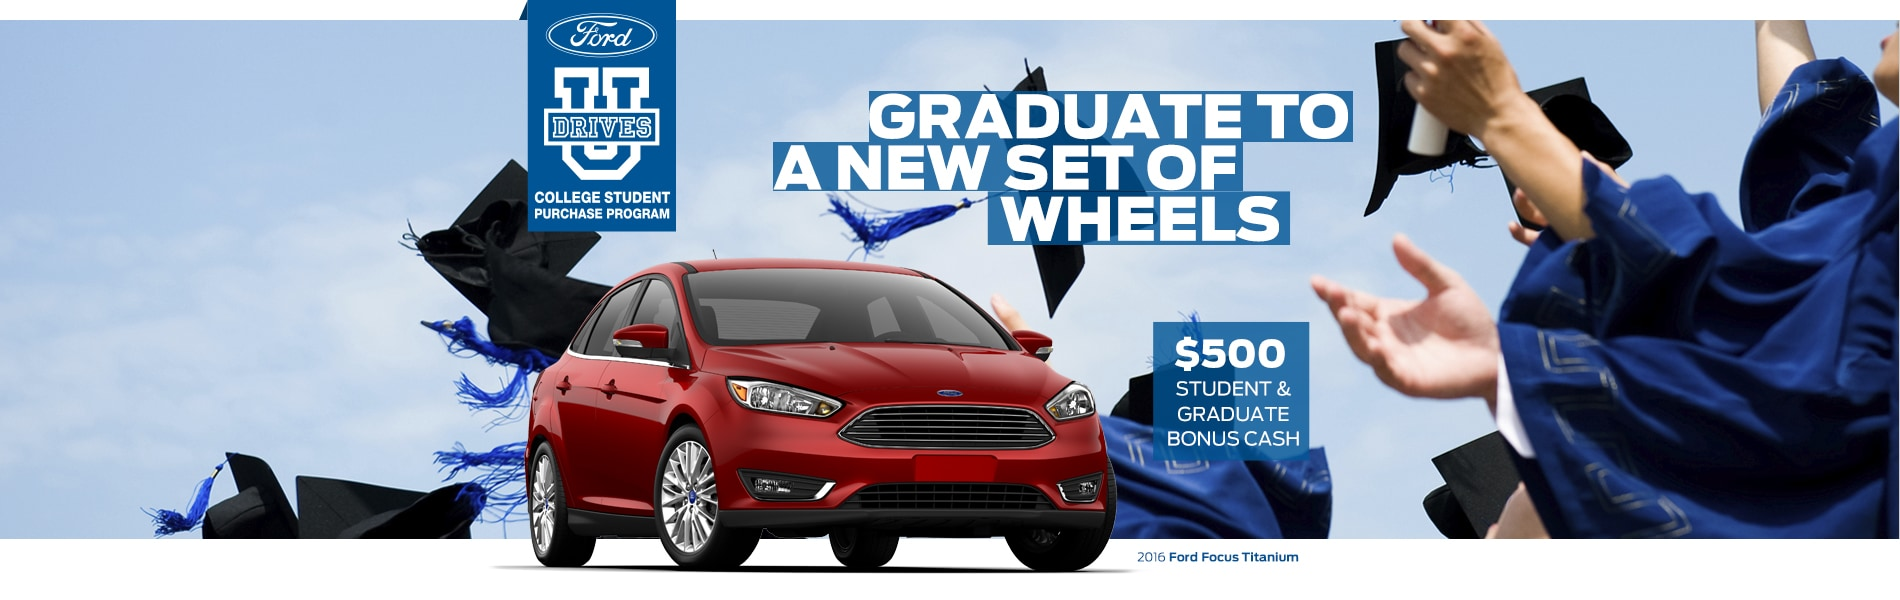 Ford college student purchase program